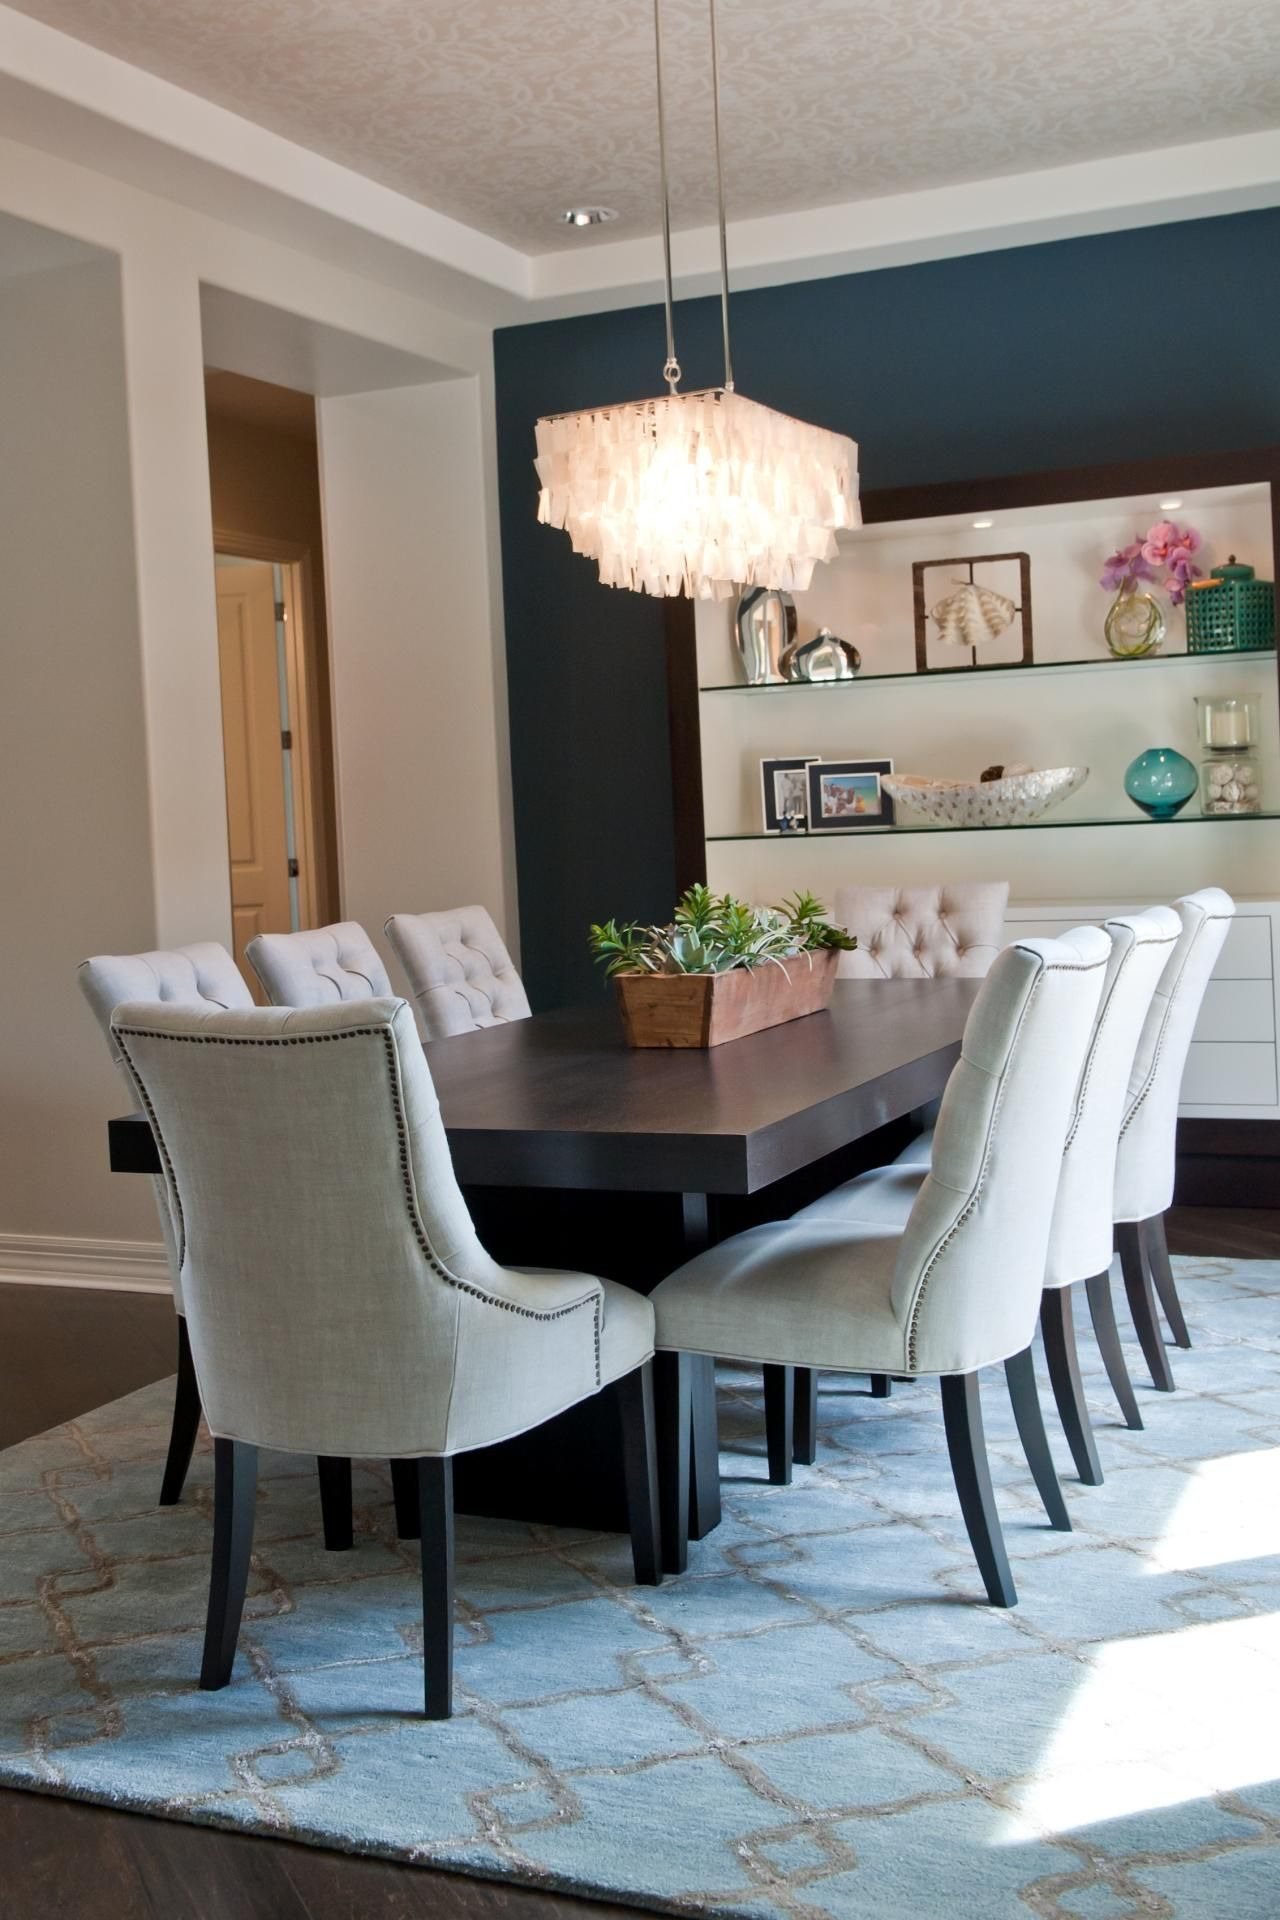 Dining Room Dark Romantic: Eight Off-white Tufted Chairs Surround A Dark Wood Table